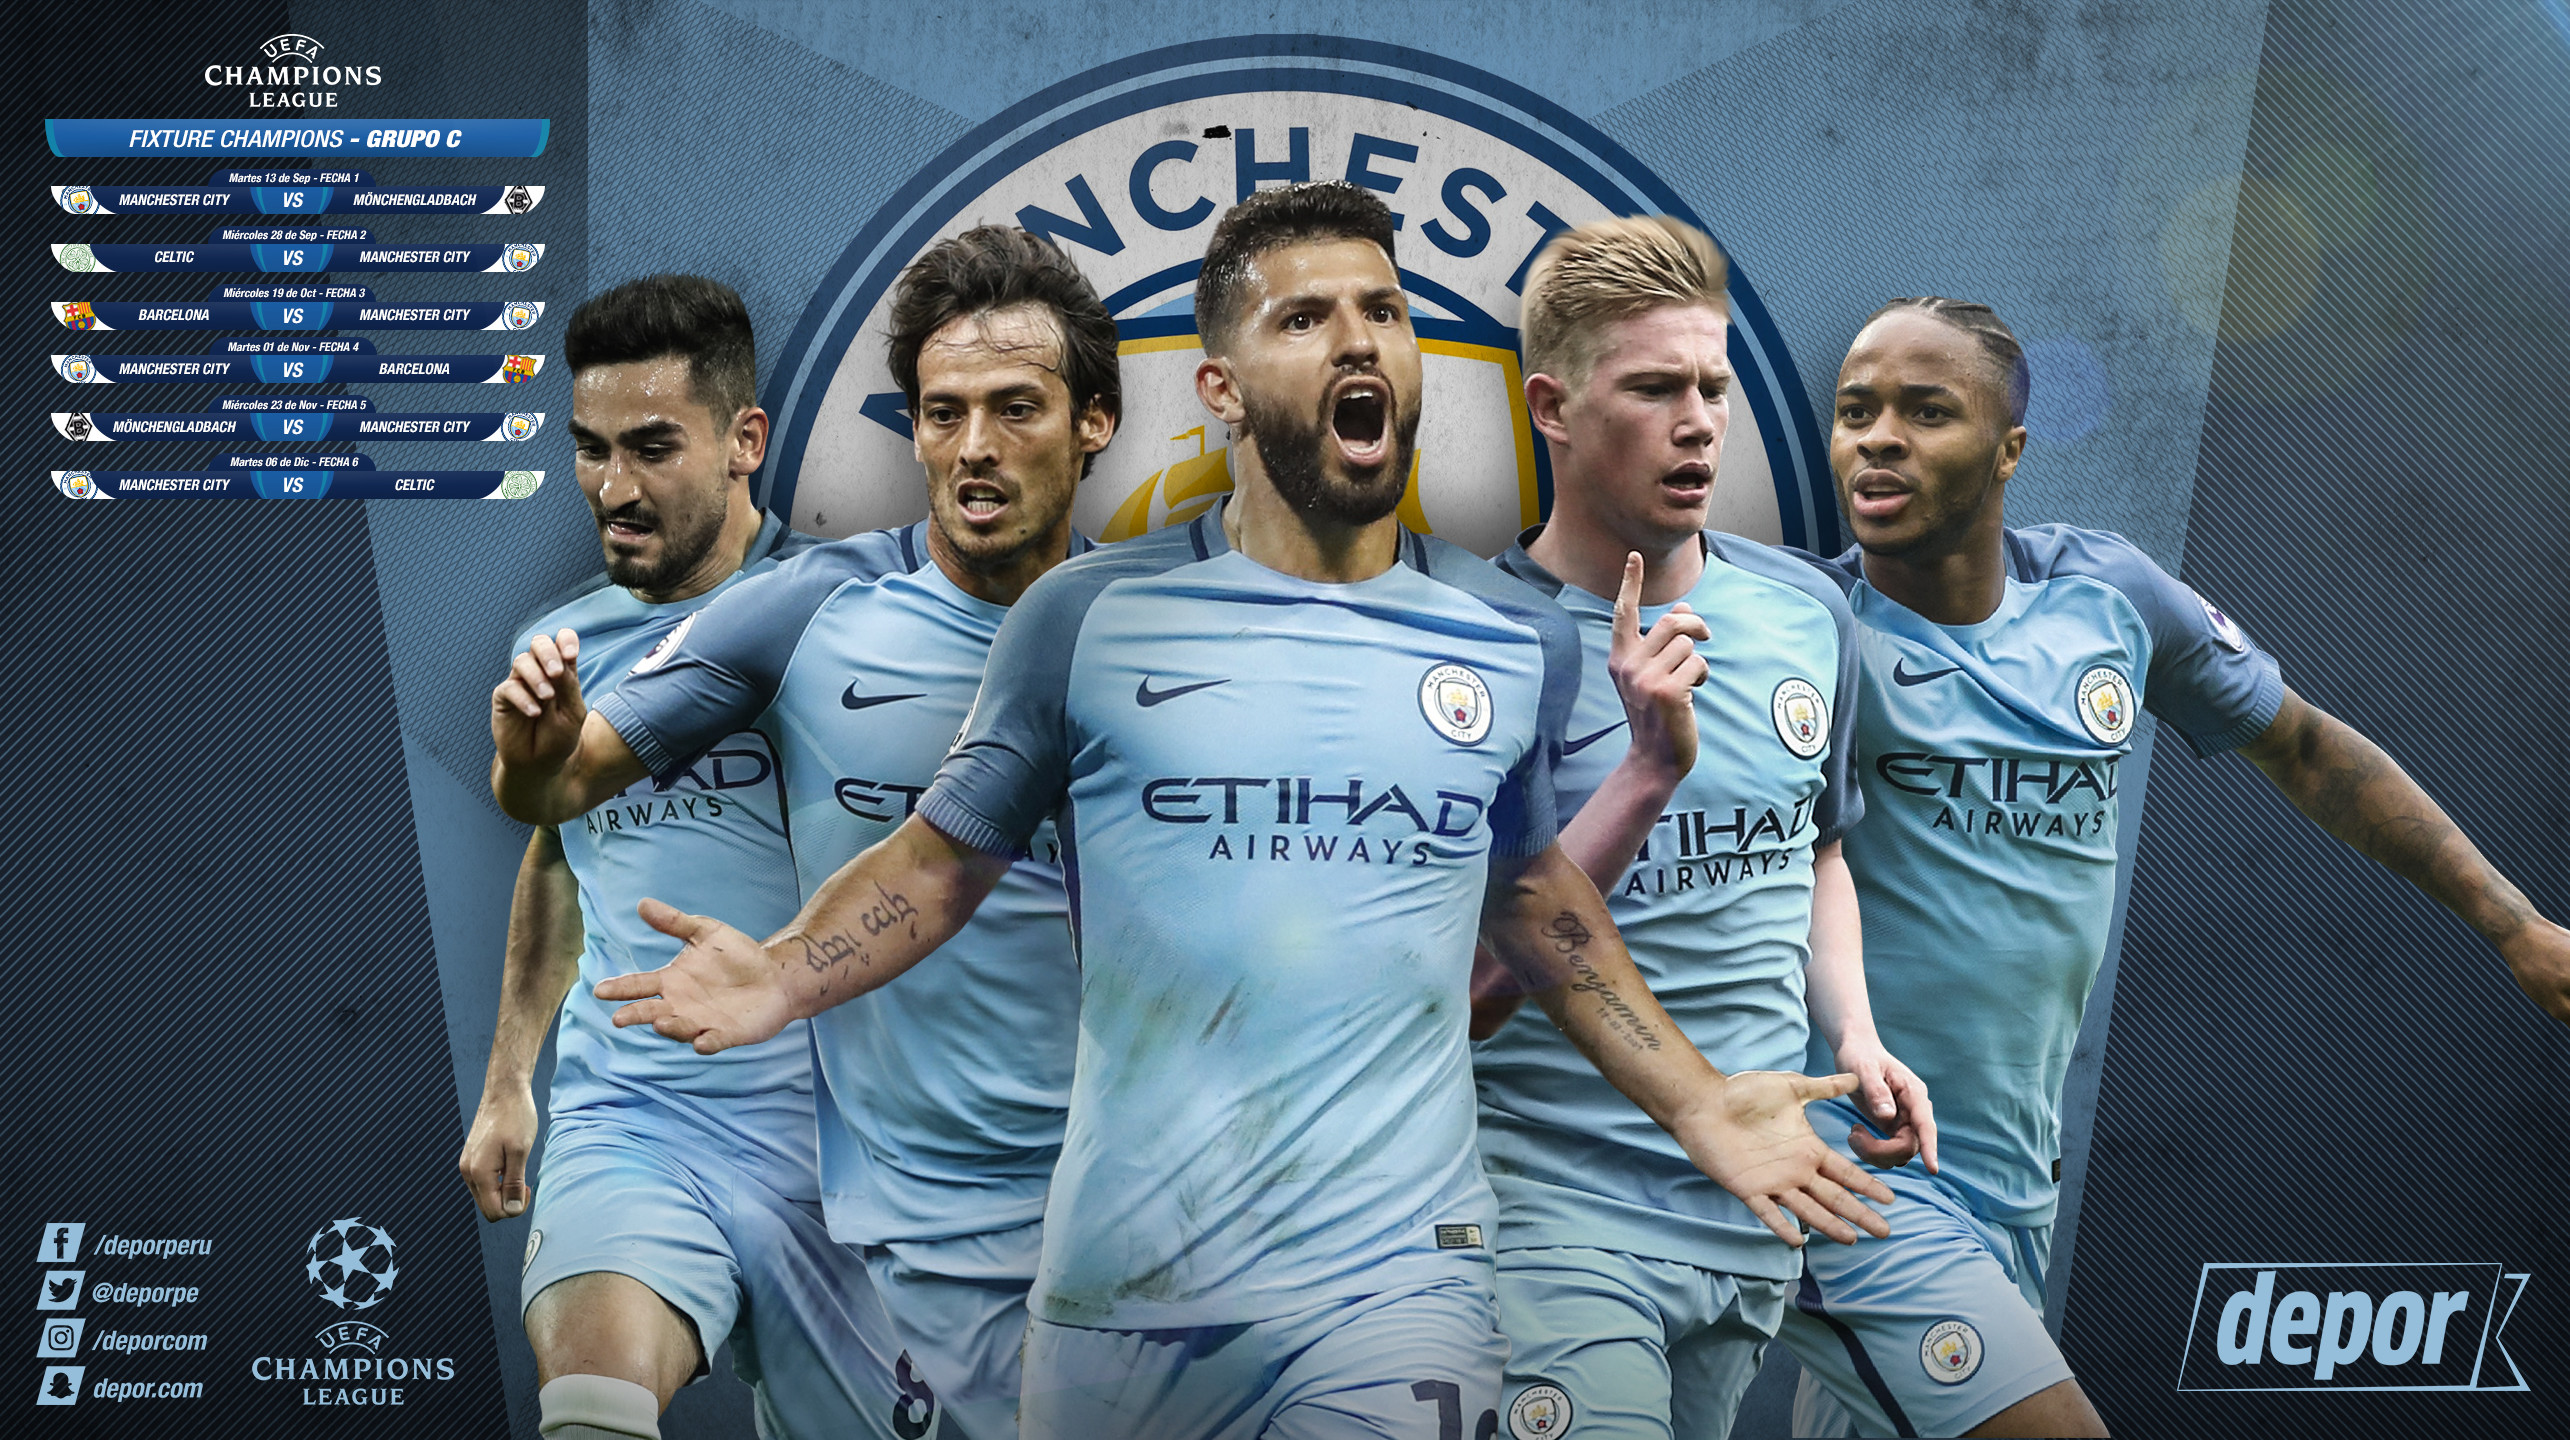 Manchester City Fc Wallpaper: Manchester City Wallpaper 2018 (72+ Pictures